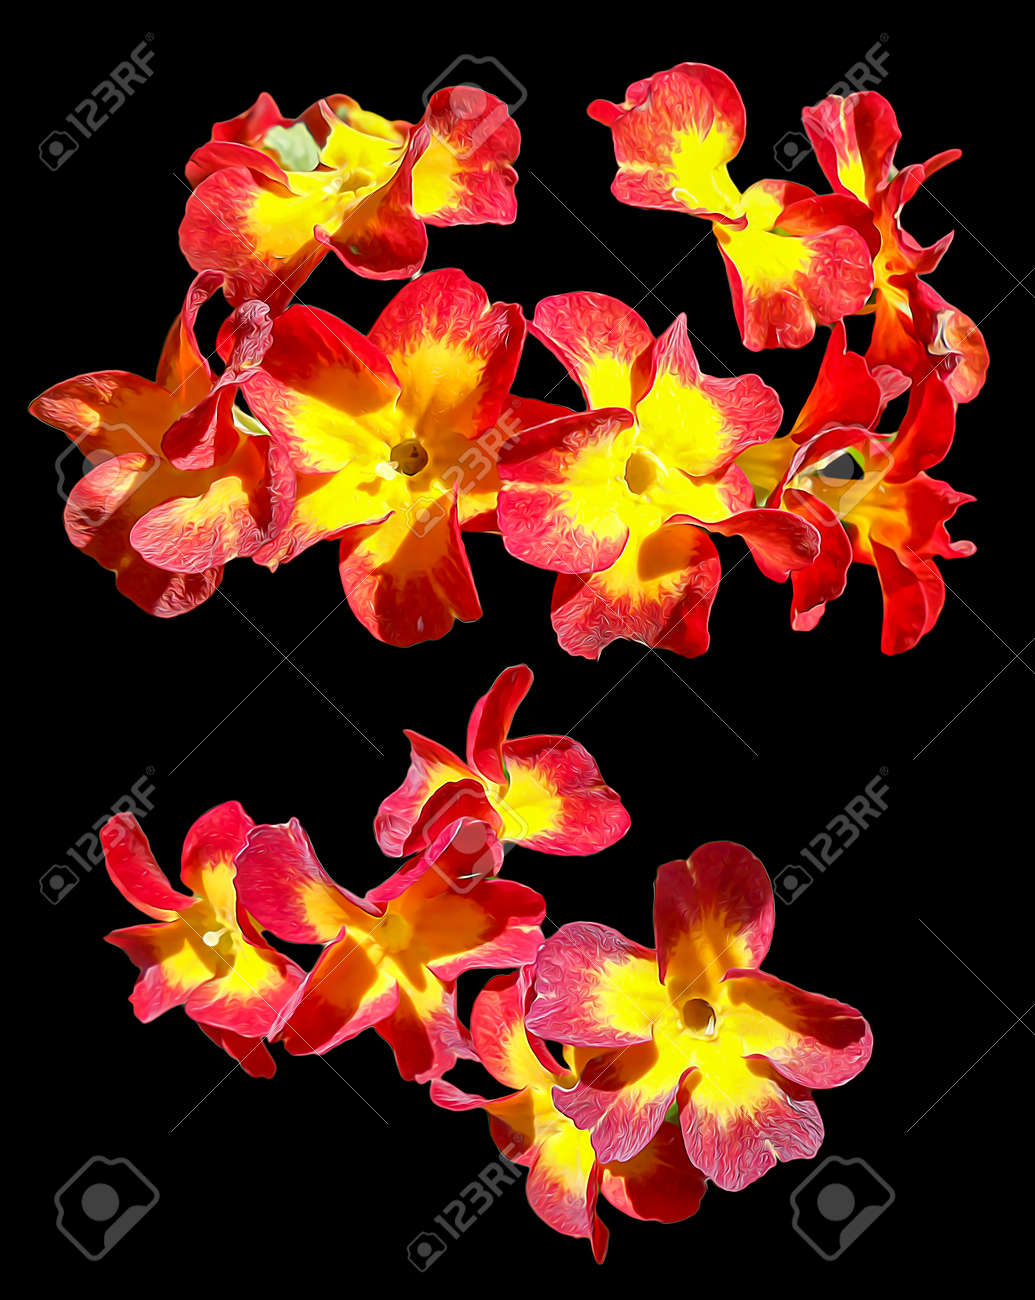 Oil Draw Petunia Flower Bright Flower In Perspective Fresh Stock Photo Picture And Royalty Free Image Image 59744587